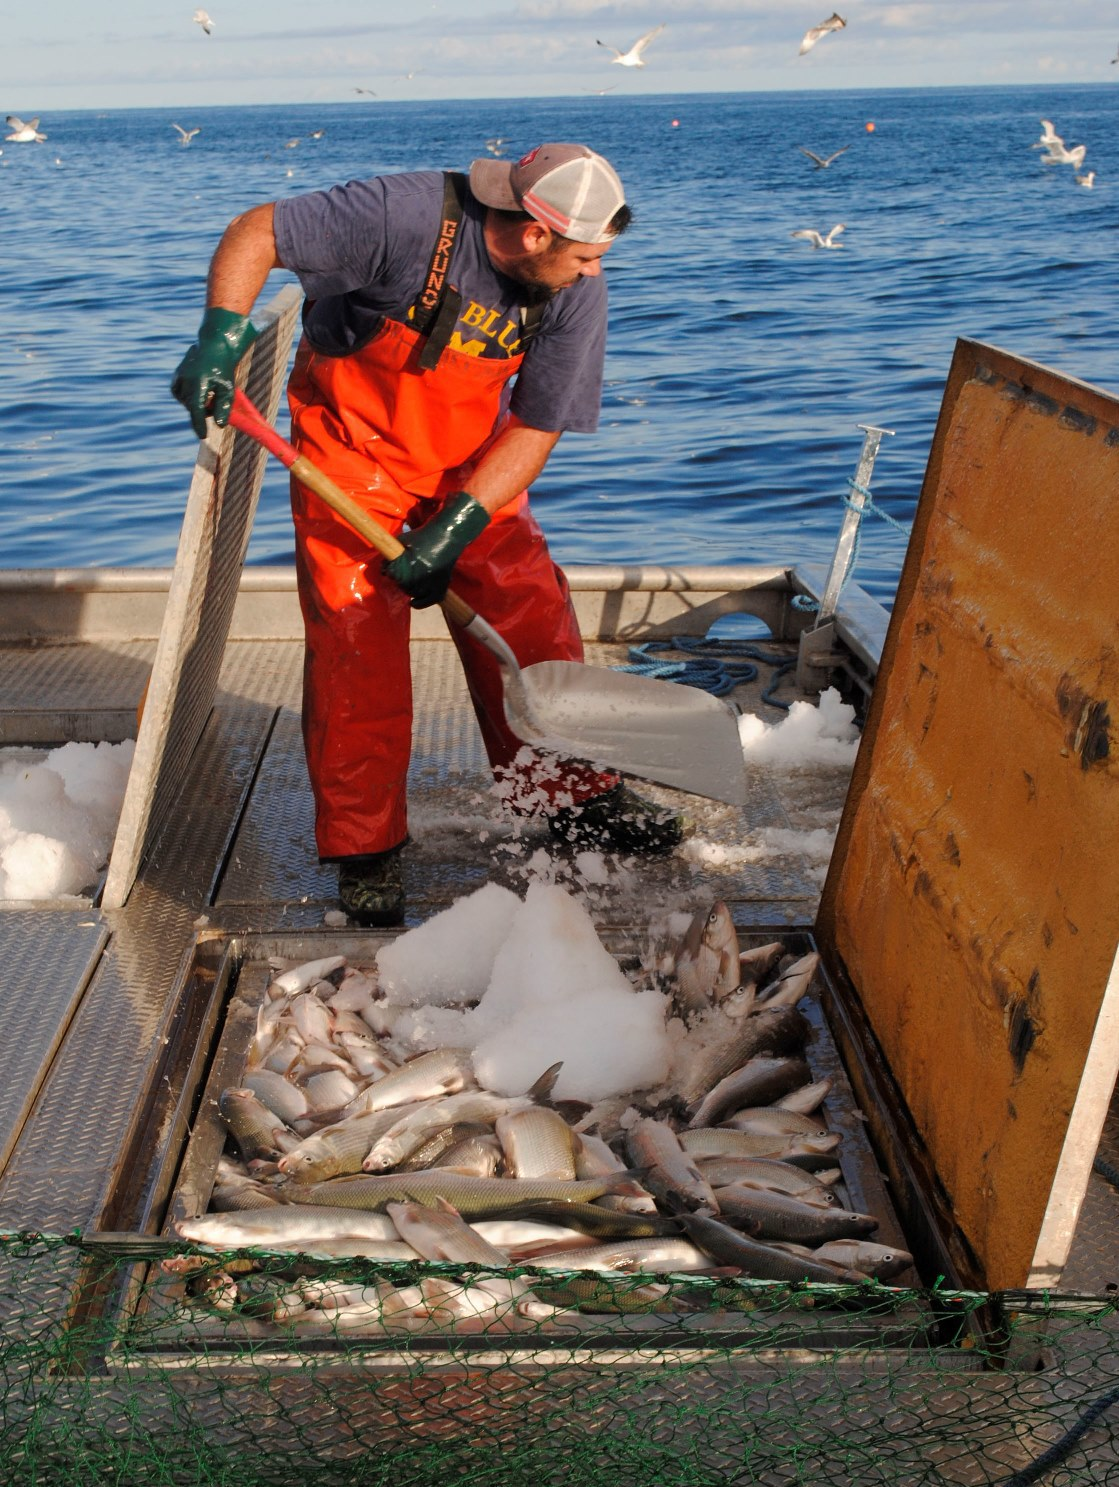 Crewman Tom Burleson shovels ice into a bin full of whitefish.